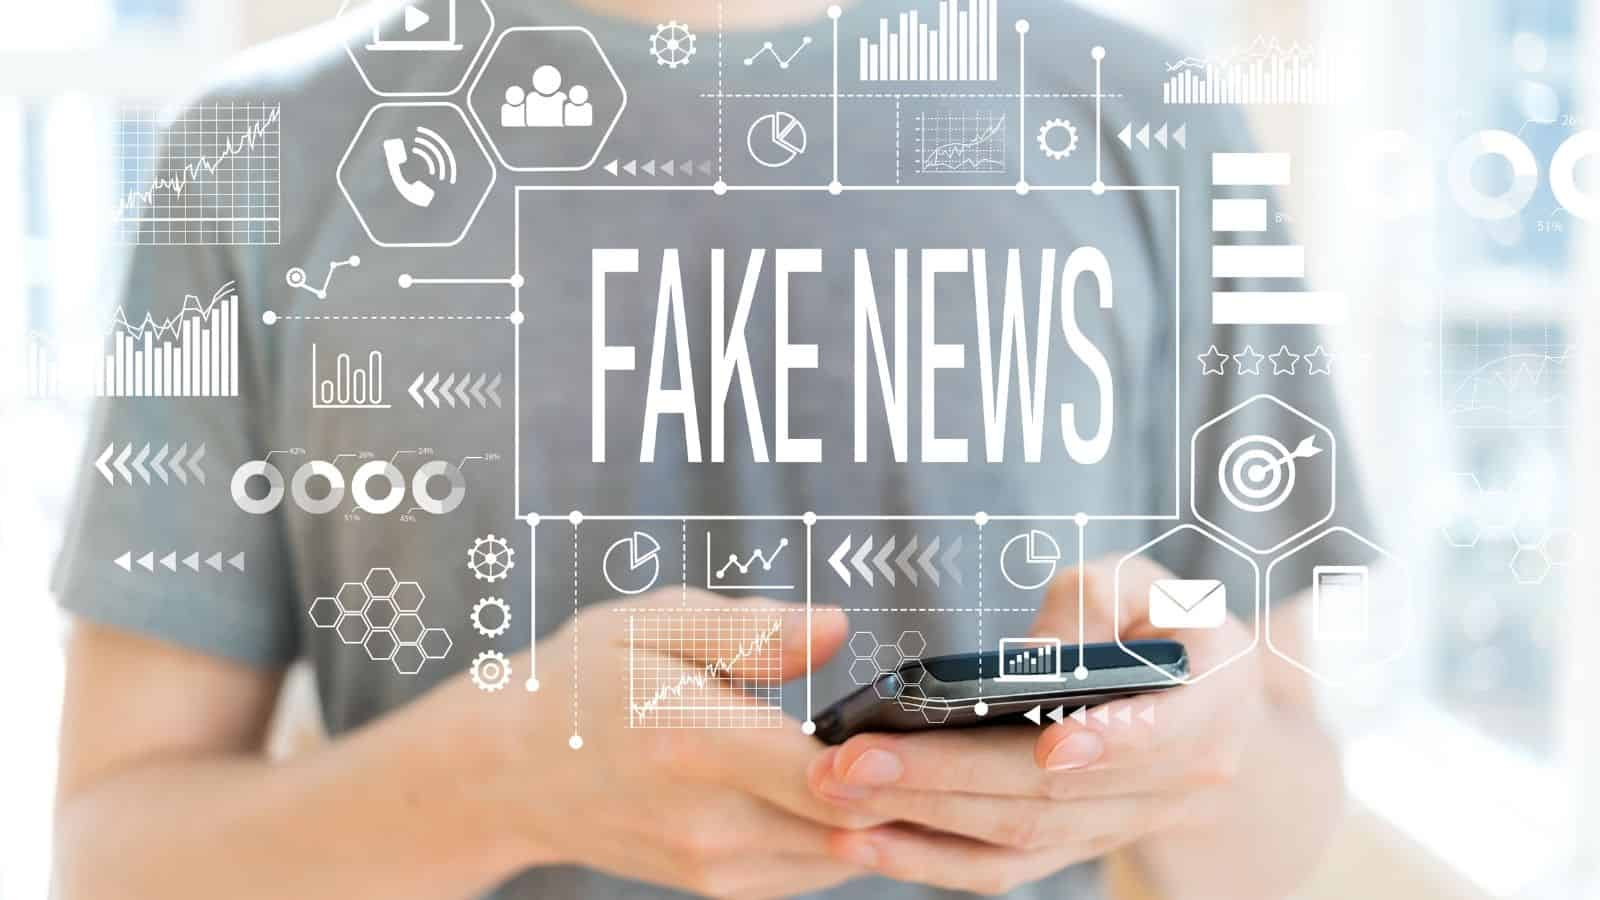 How to recognize fake news & teach teens to fact check media